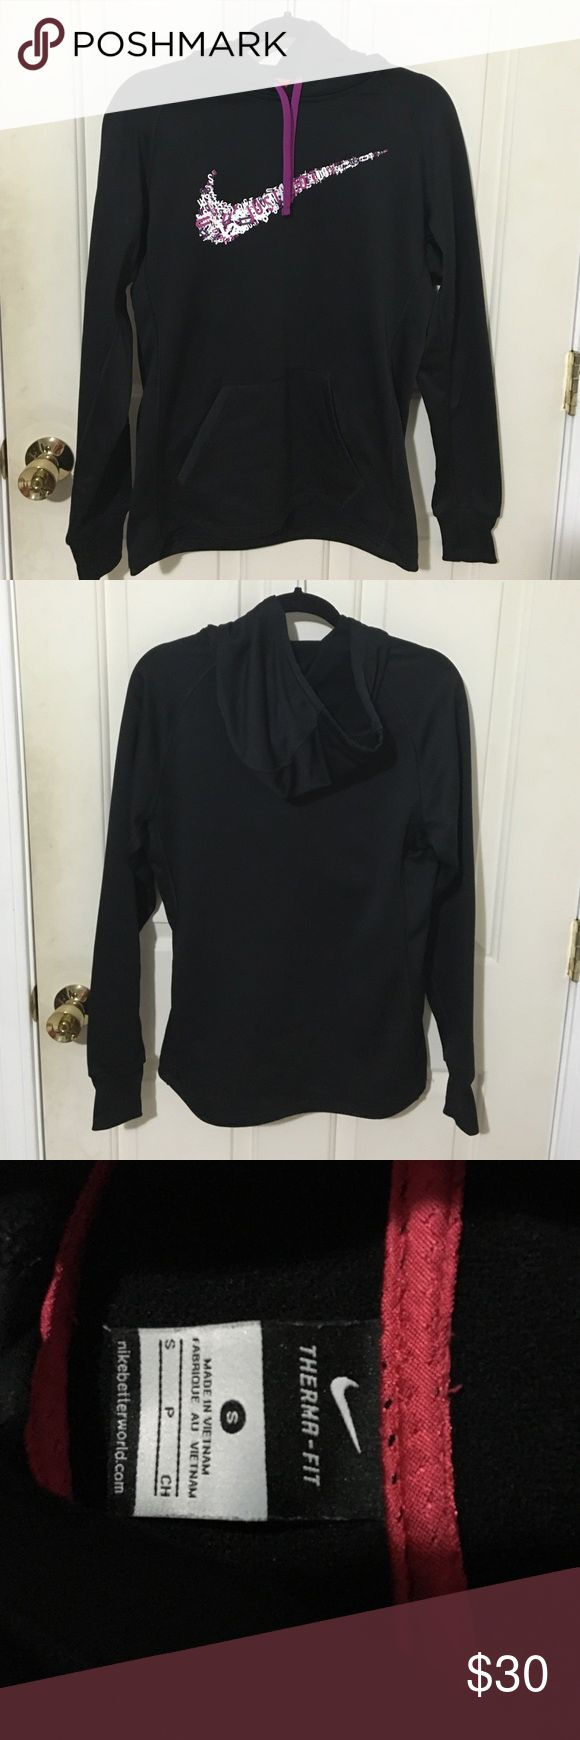 """Nike Sweatshirt This is a black Nike sweatshirt with purple tassels, and the signature Nike swoosh made out of the phrase """"Just Do It"""" Nike Tops Sweatshirts & Hoodies"""